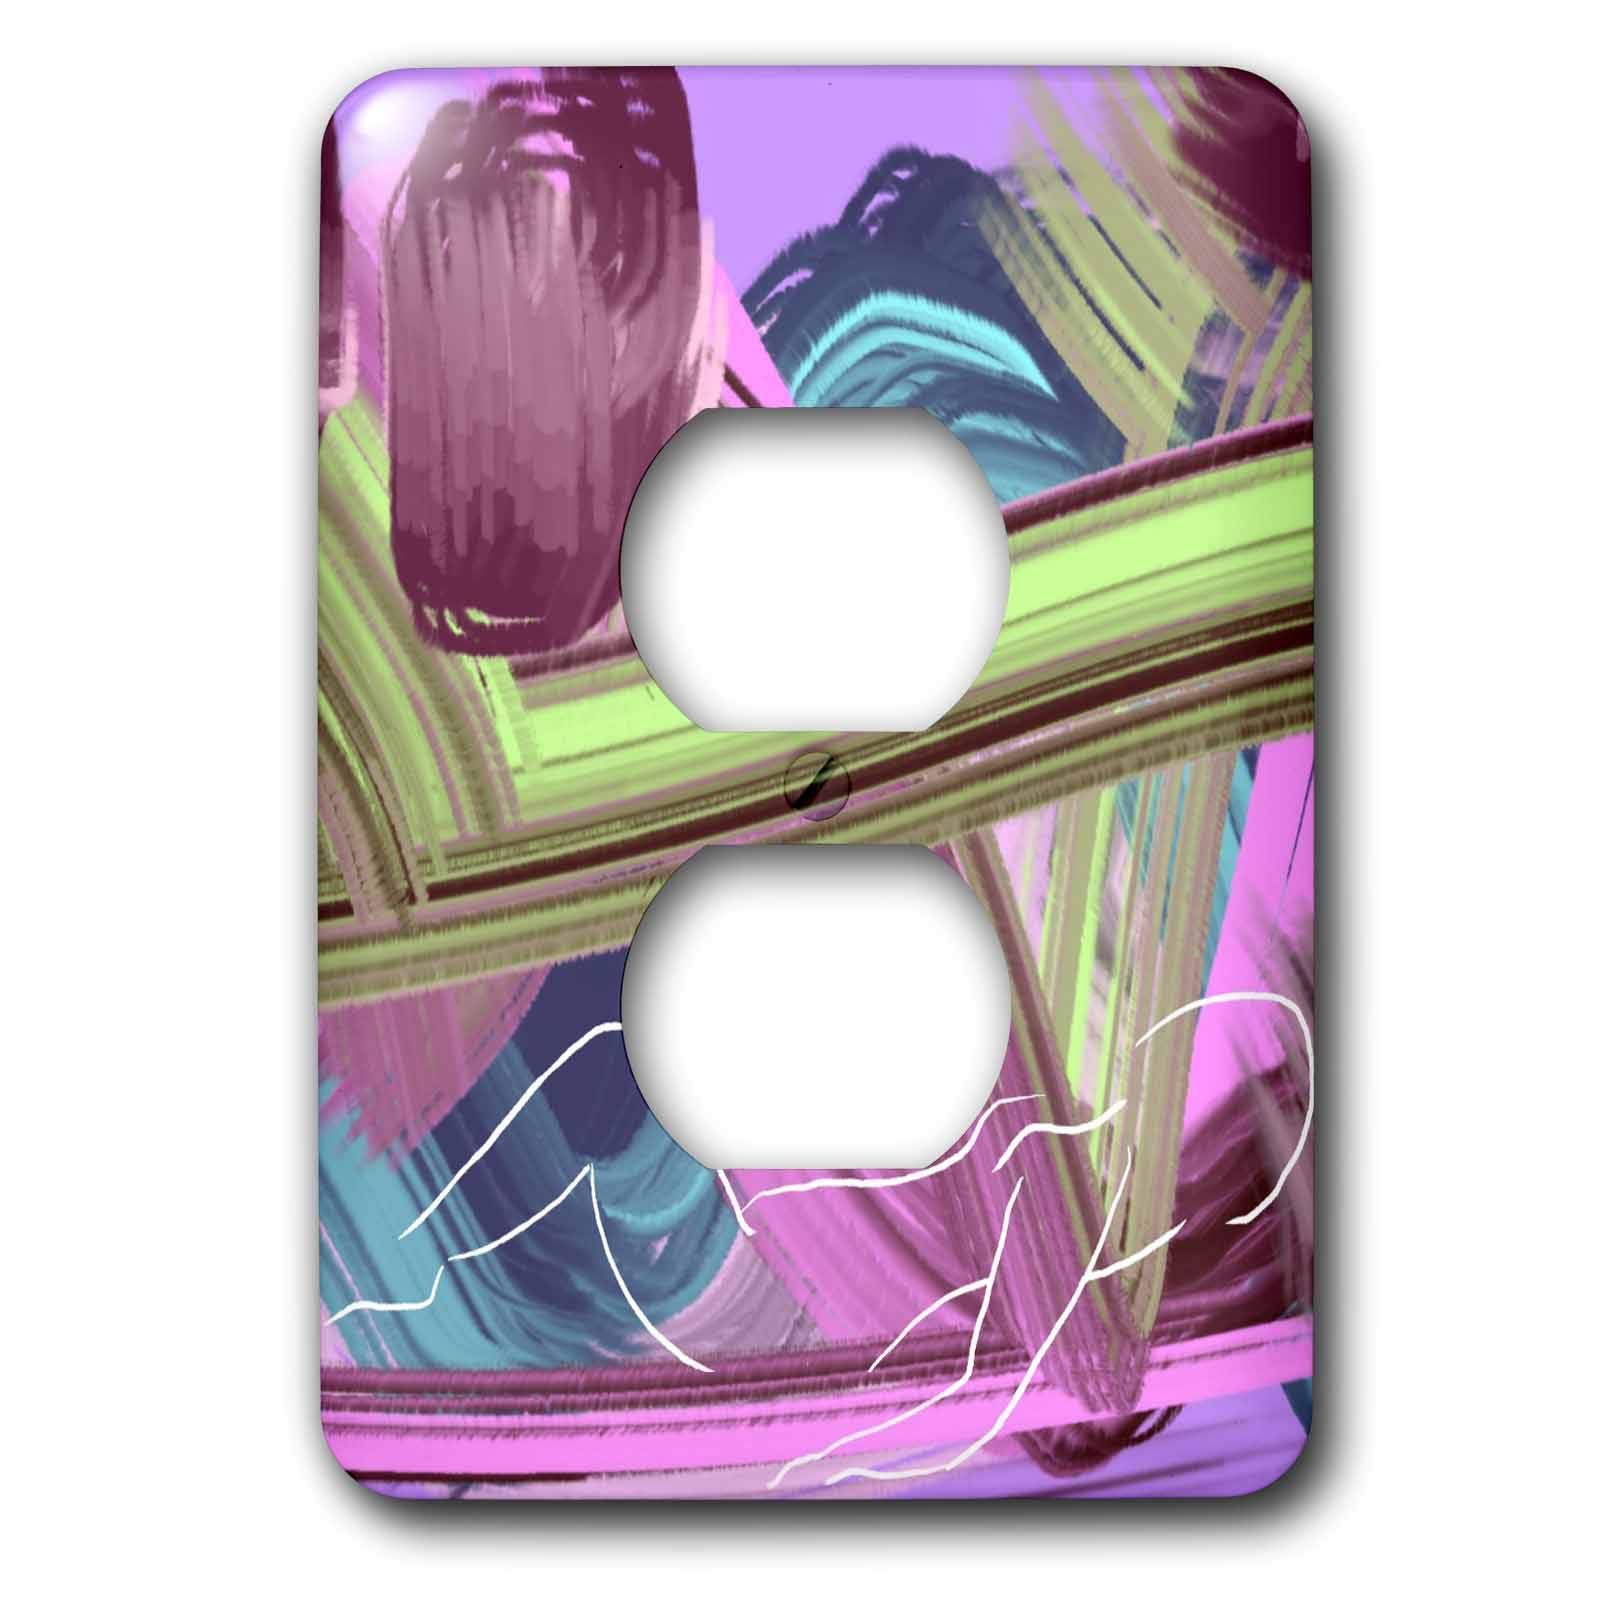 3dRose Lasha Beraia - Minimalist - Reclining Woman on Abstract Background - Light Switch Covers - 2 plug outlet cover (lsp_288697_6)